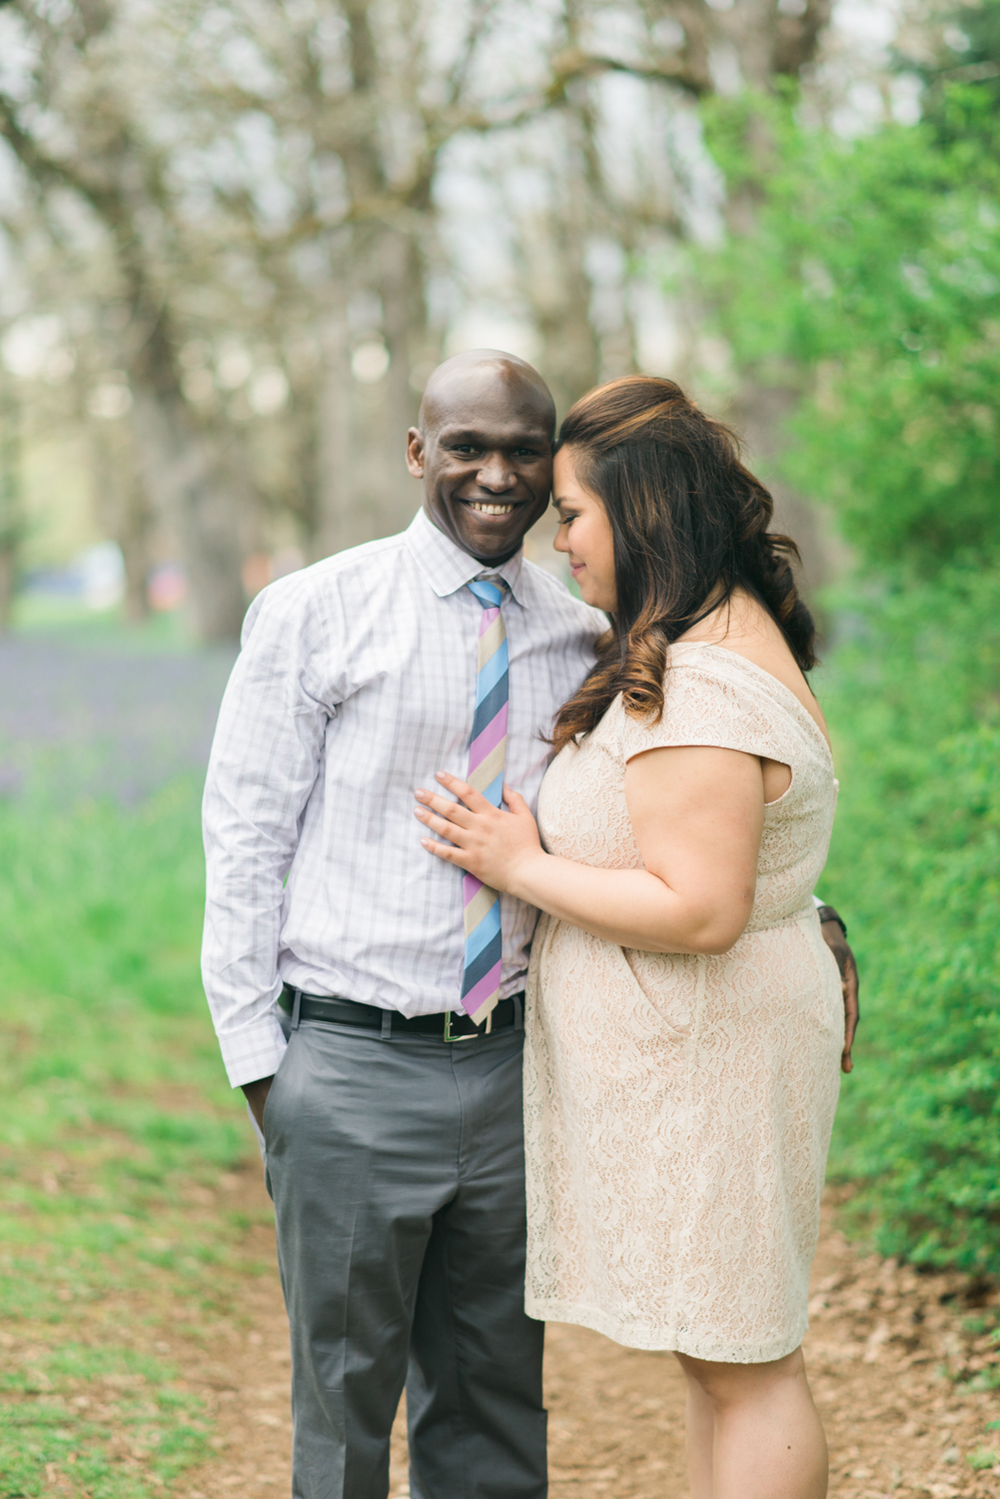 romantic-salem-engagement-photos-bush-park-shelley-marie-photo-20